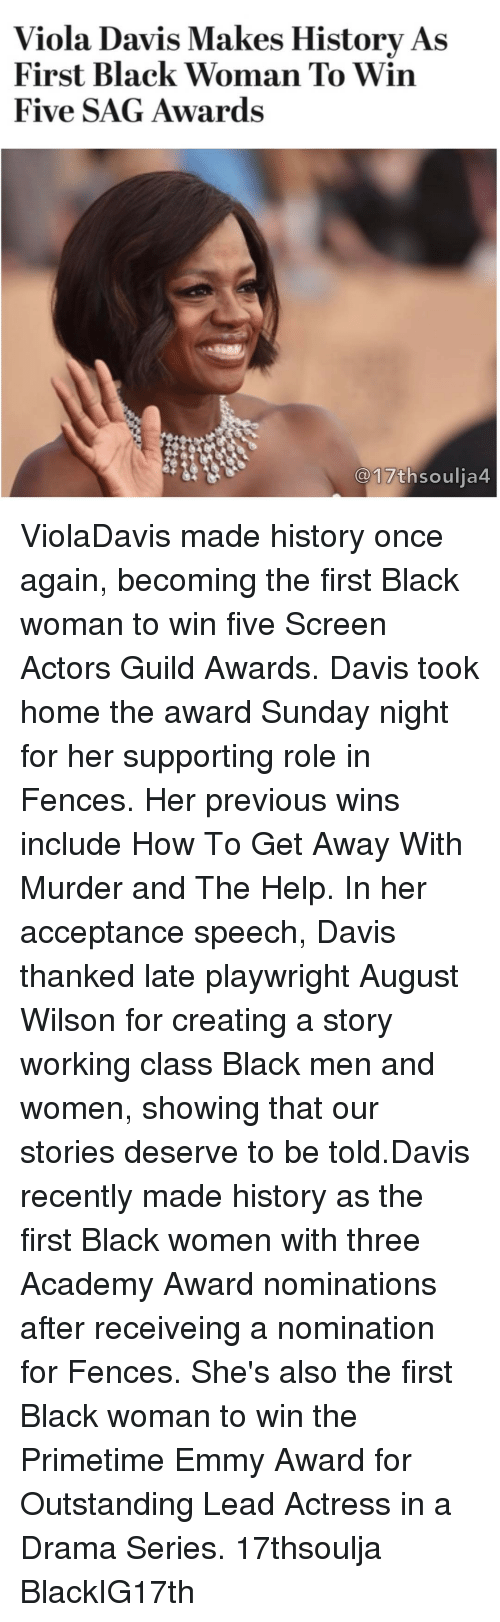 Academy Awards, Memes, and Academy: Viola Davis Makes History As  First Black Woman To Win  Five SAG Awards  17th soulia4 ViolaDavis made history once again, becoming the first Black woman to win five Screen Actors Guild Awards. Davis took home the award Sunday night for her supporting role in Fences. Her previous wins include How To Get Away With Murder and The Help. In her acceptance speech, Davis thanked late playwright August Wilson for creating a story working class Black men and women, showing that our stories deserve to be told.Davis recently made history as the first Black women with three Academy Award nominations after receiveing a nomination for Fences. She's also the first Black woman to win the Primetime Emmy Award for Outstanding Lead Actress in a Drama Series. 17thsoulja BlackIG17th